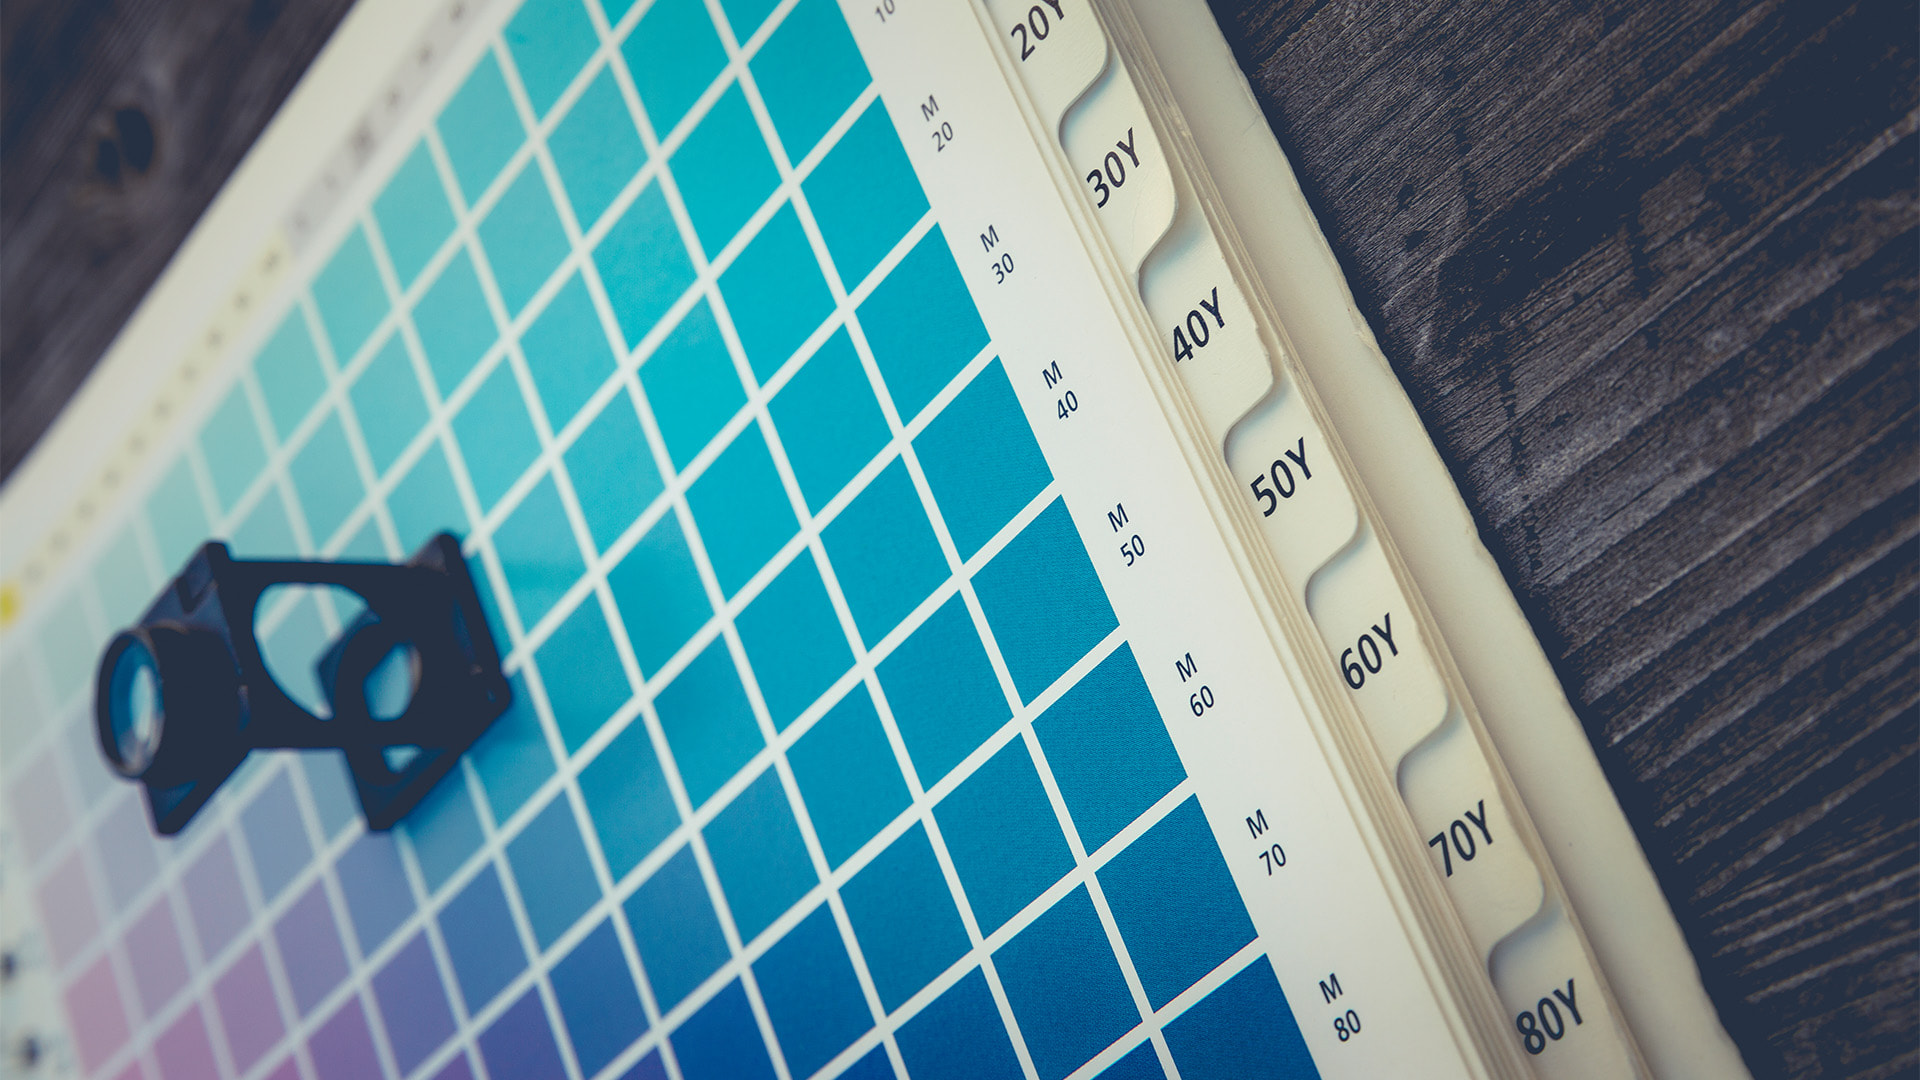 How to use tints and shades in graphic design featured image